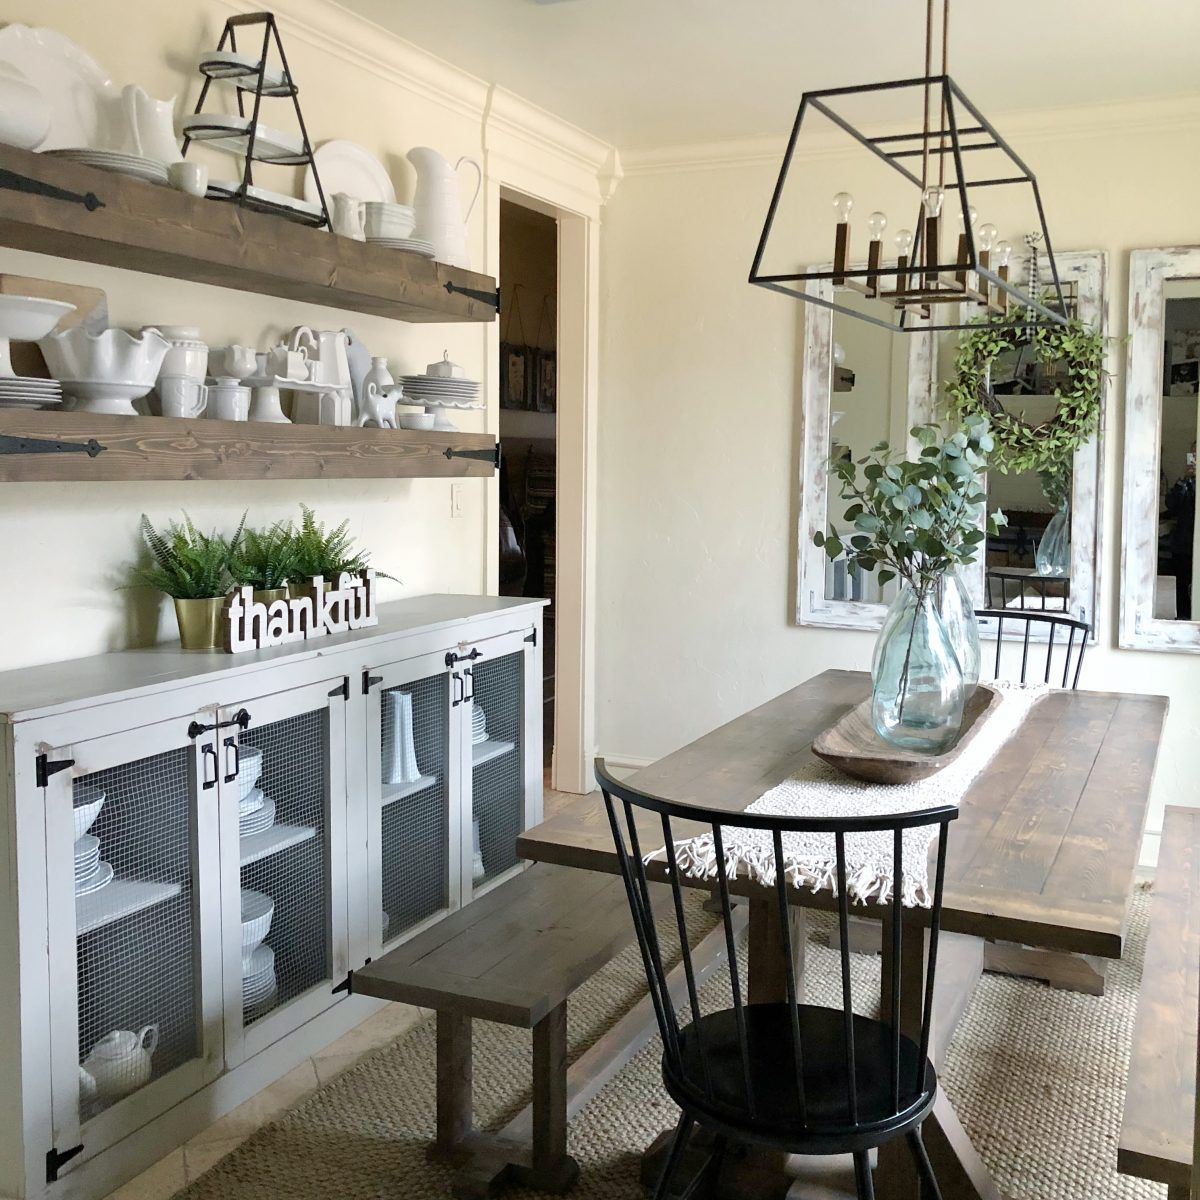 Instagram Links Farmhouse dining benches, Sideboard